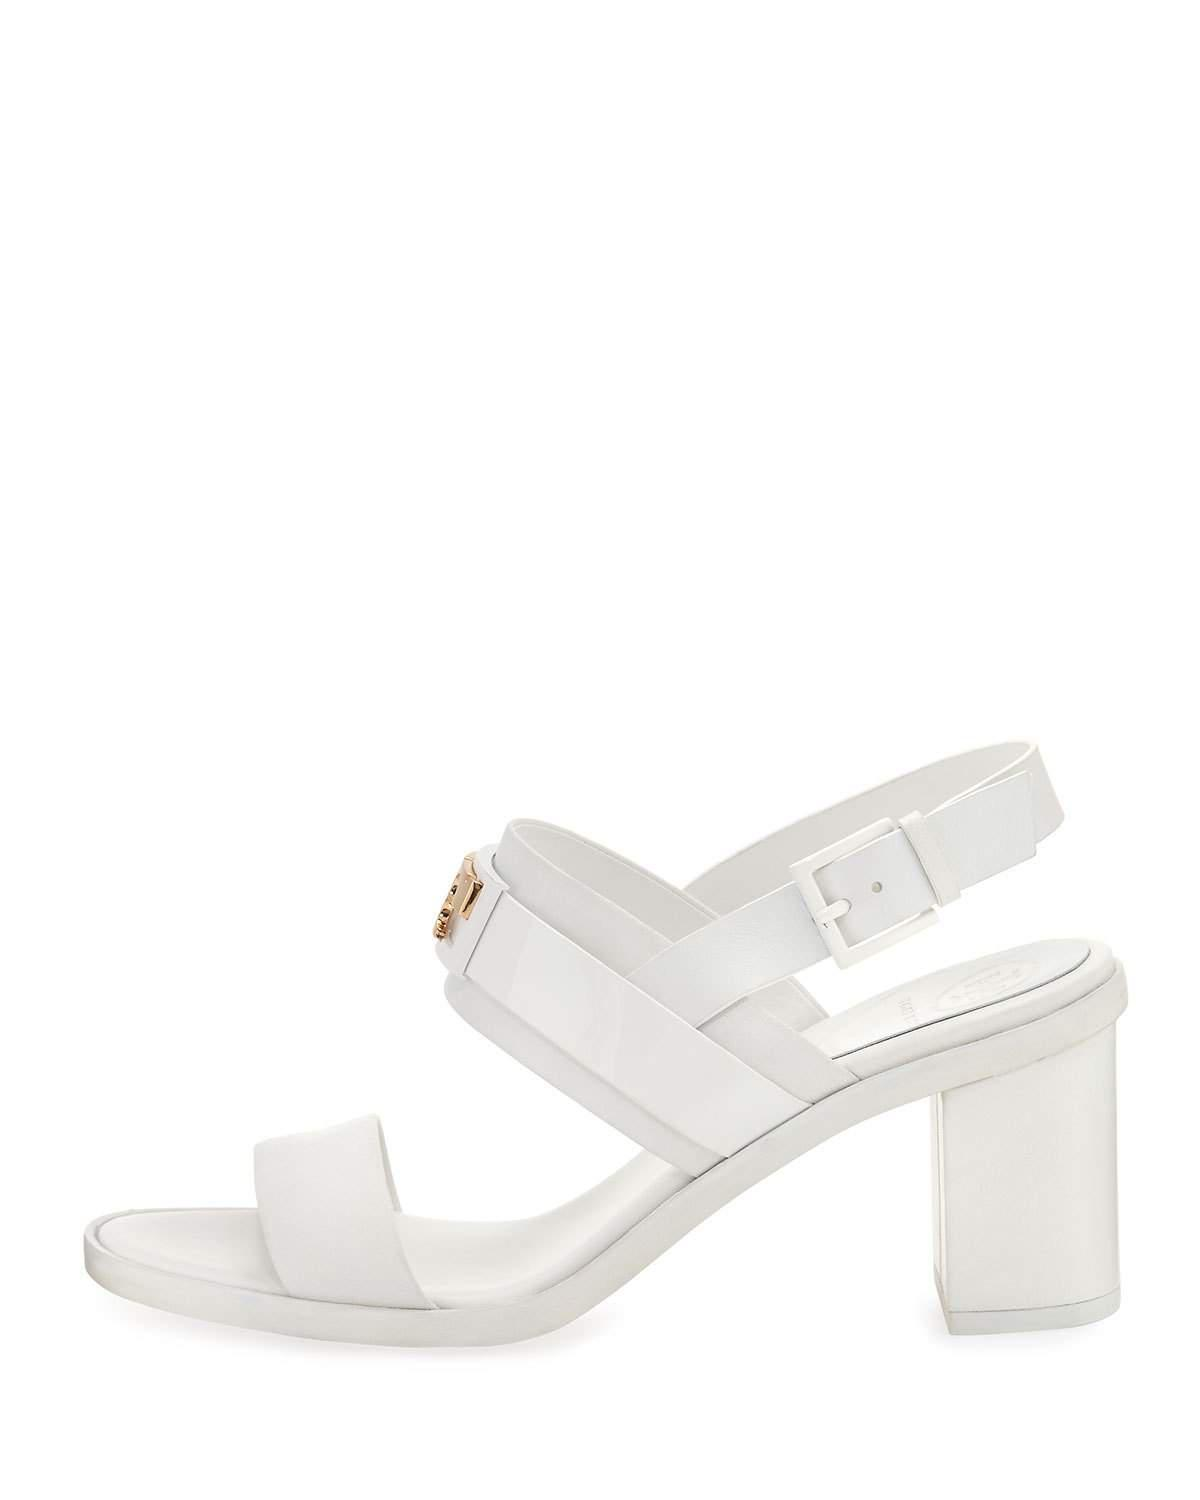 48b4e38bbb44f5 Lyst - Tory Burch Gigi Leather Two-band Sandal in White